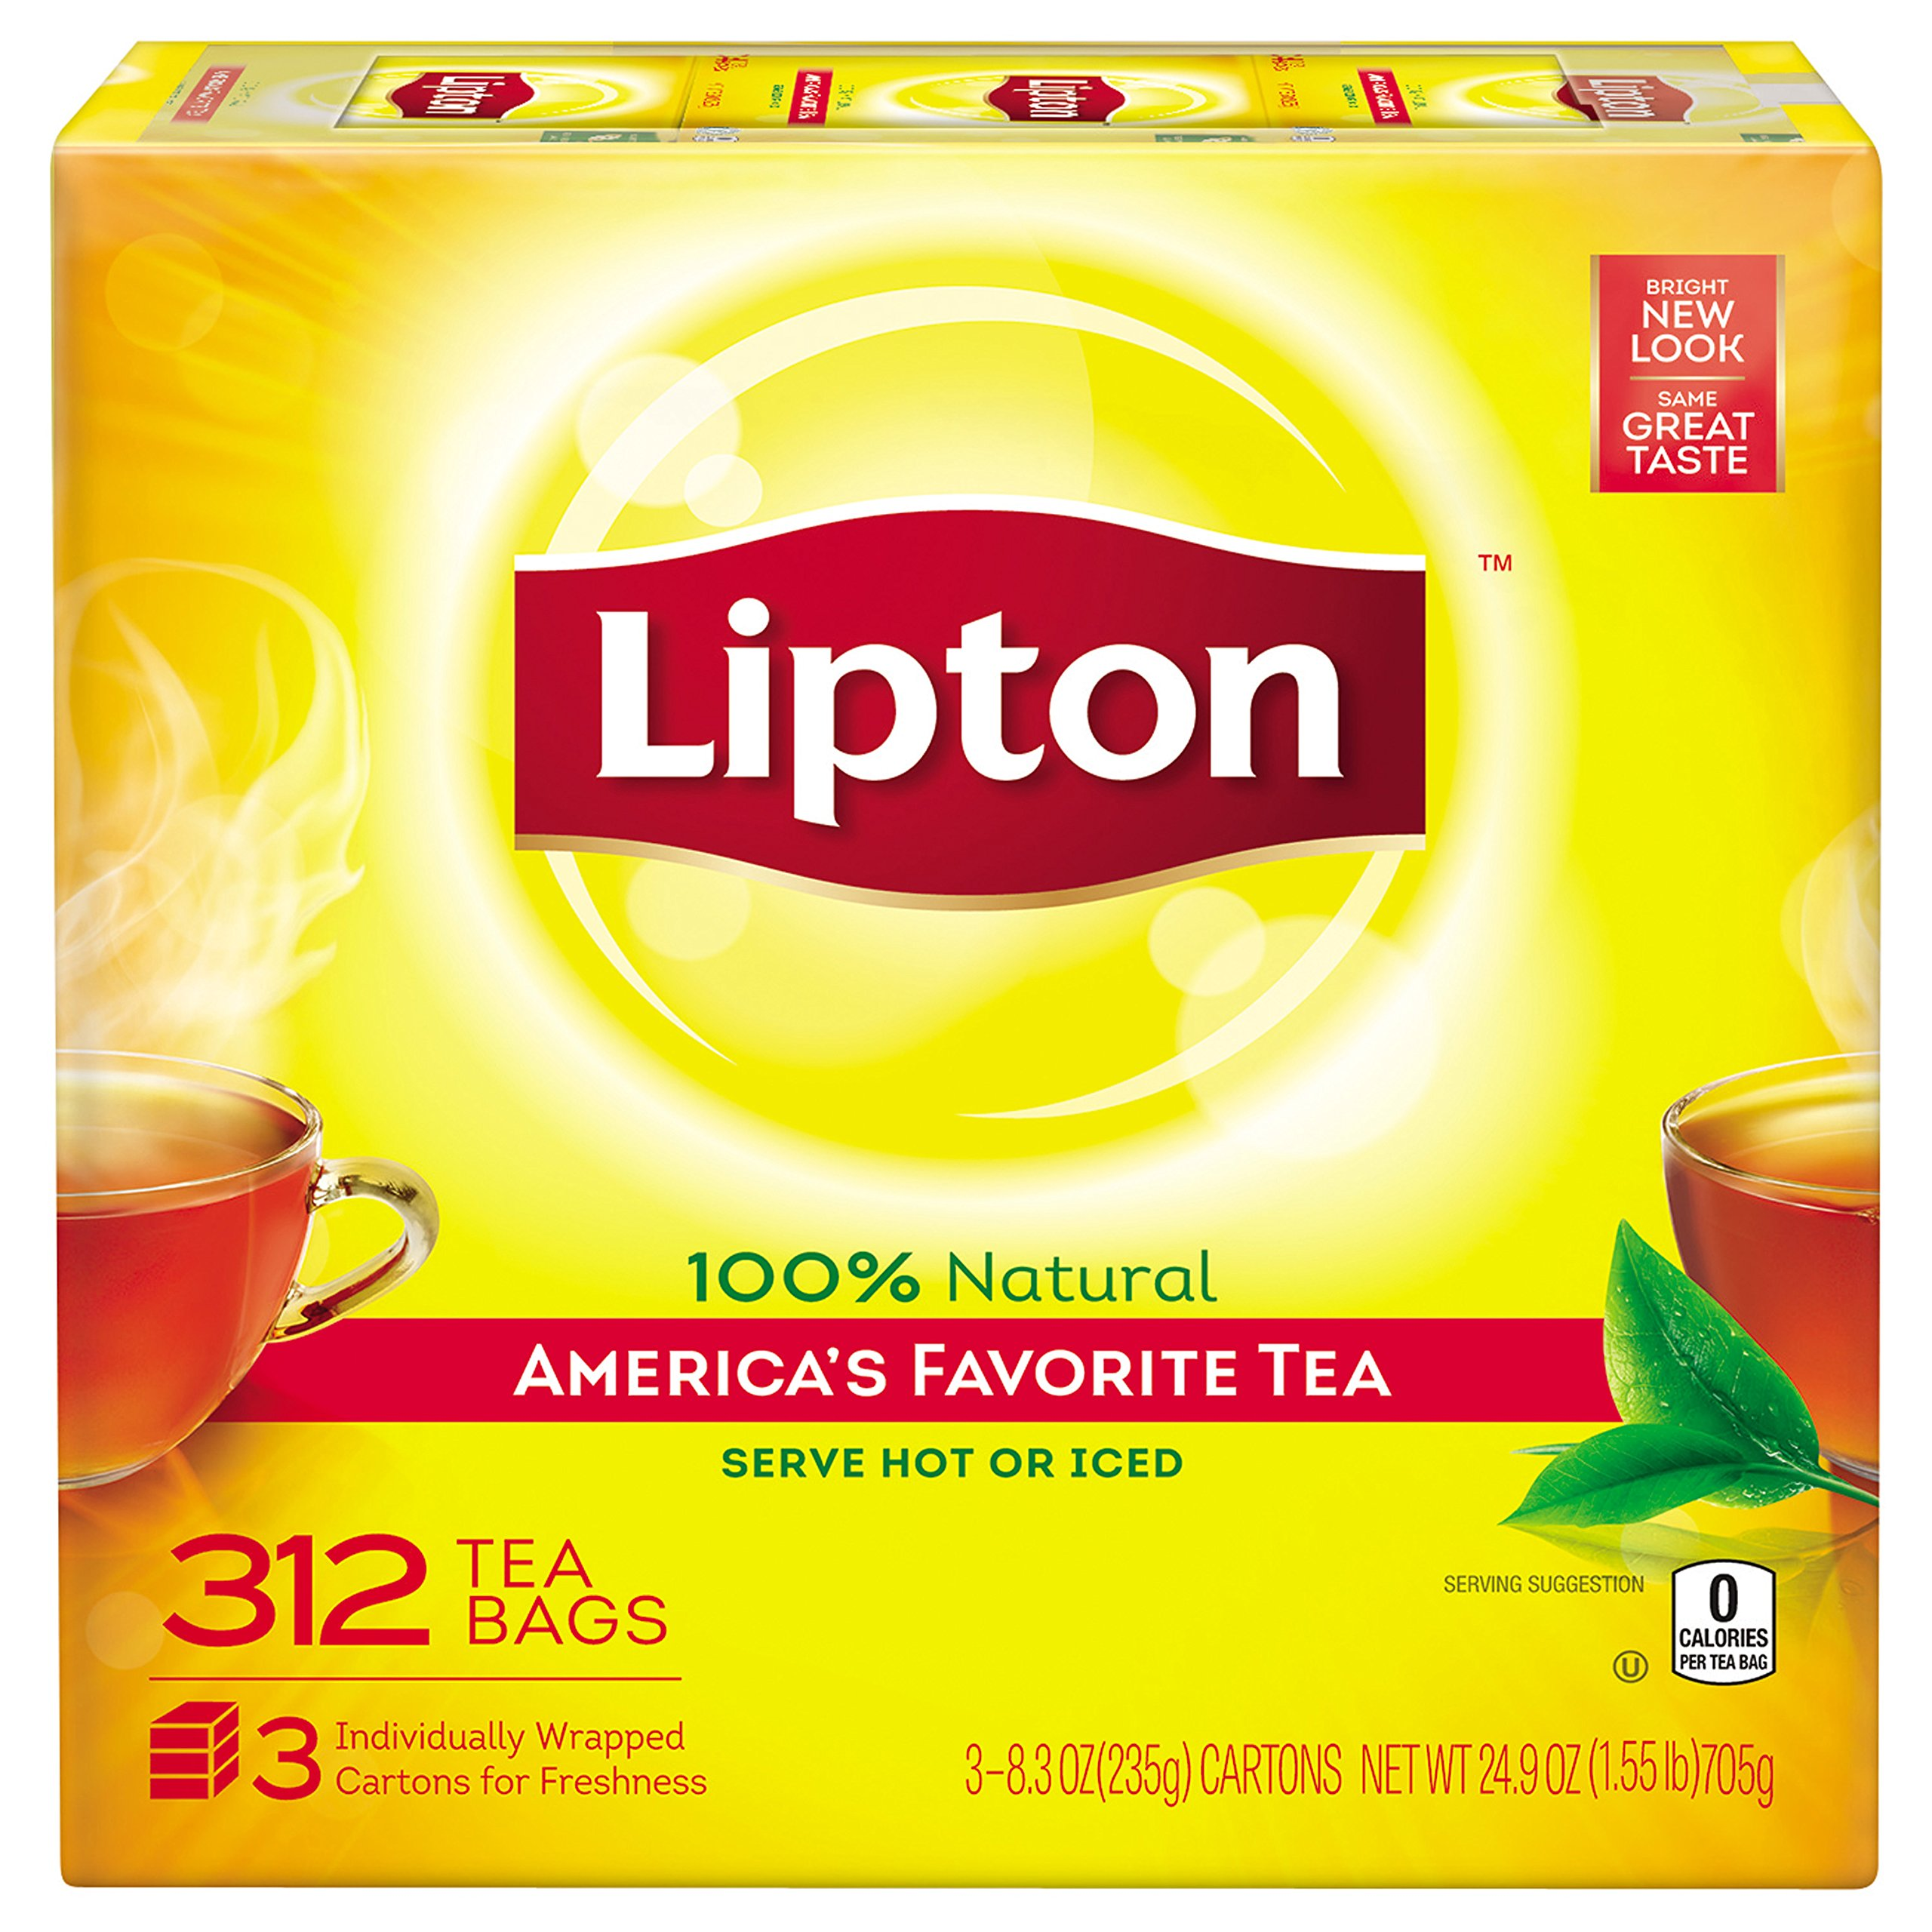 Cheap Lipton Black Label Tea Find Lipton Black Label Tea